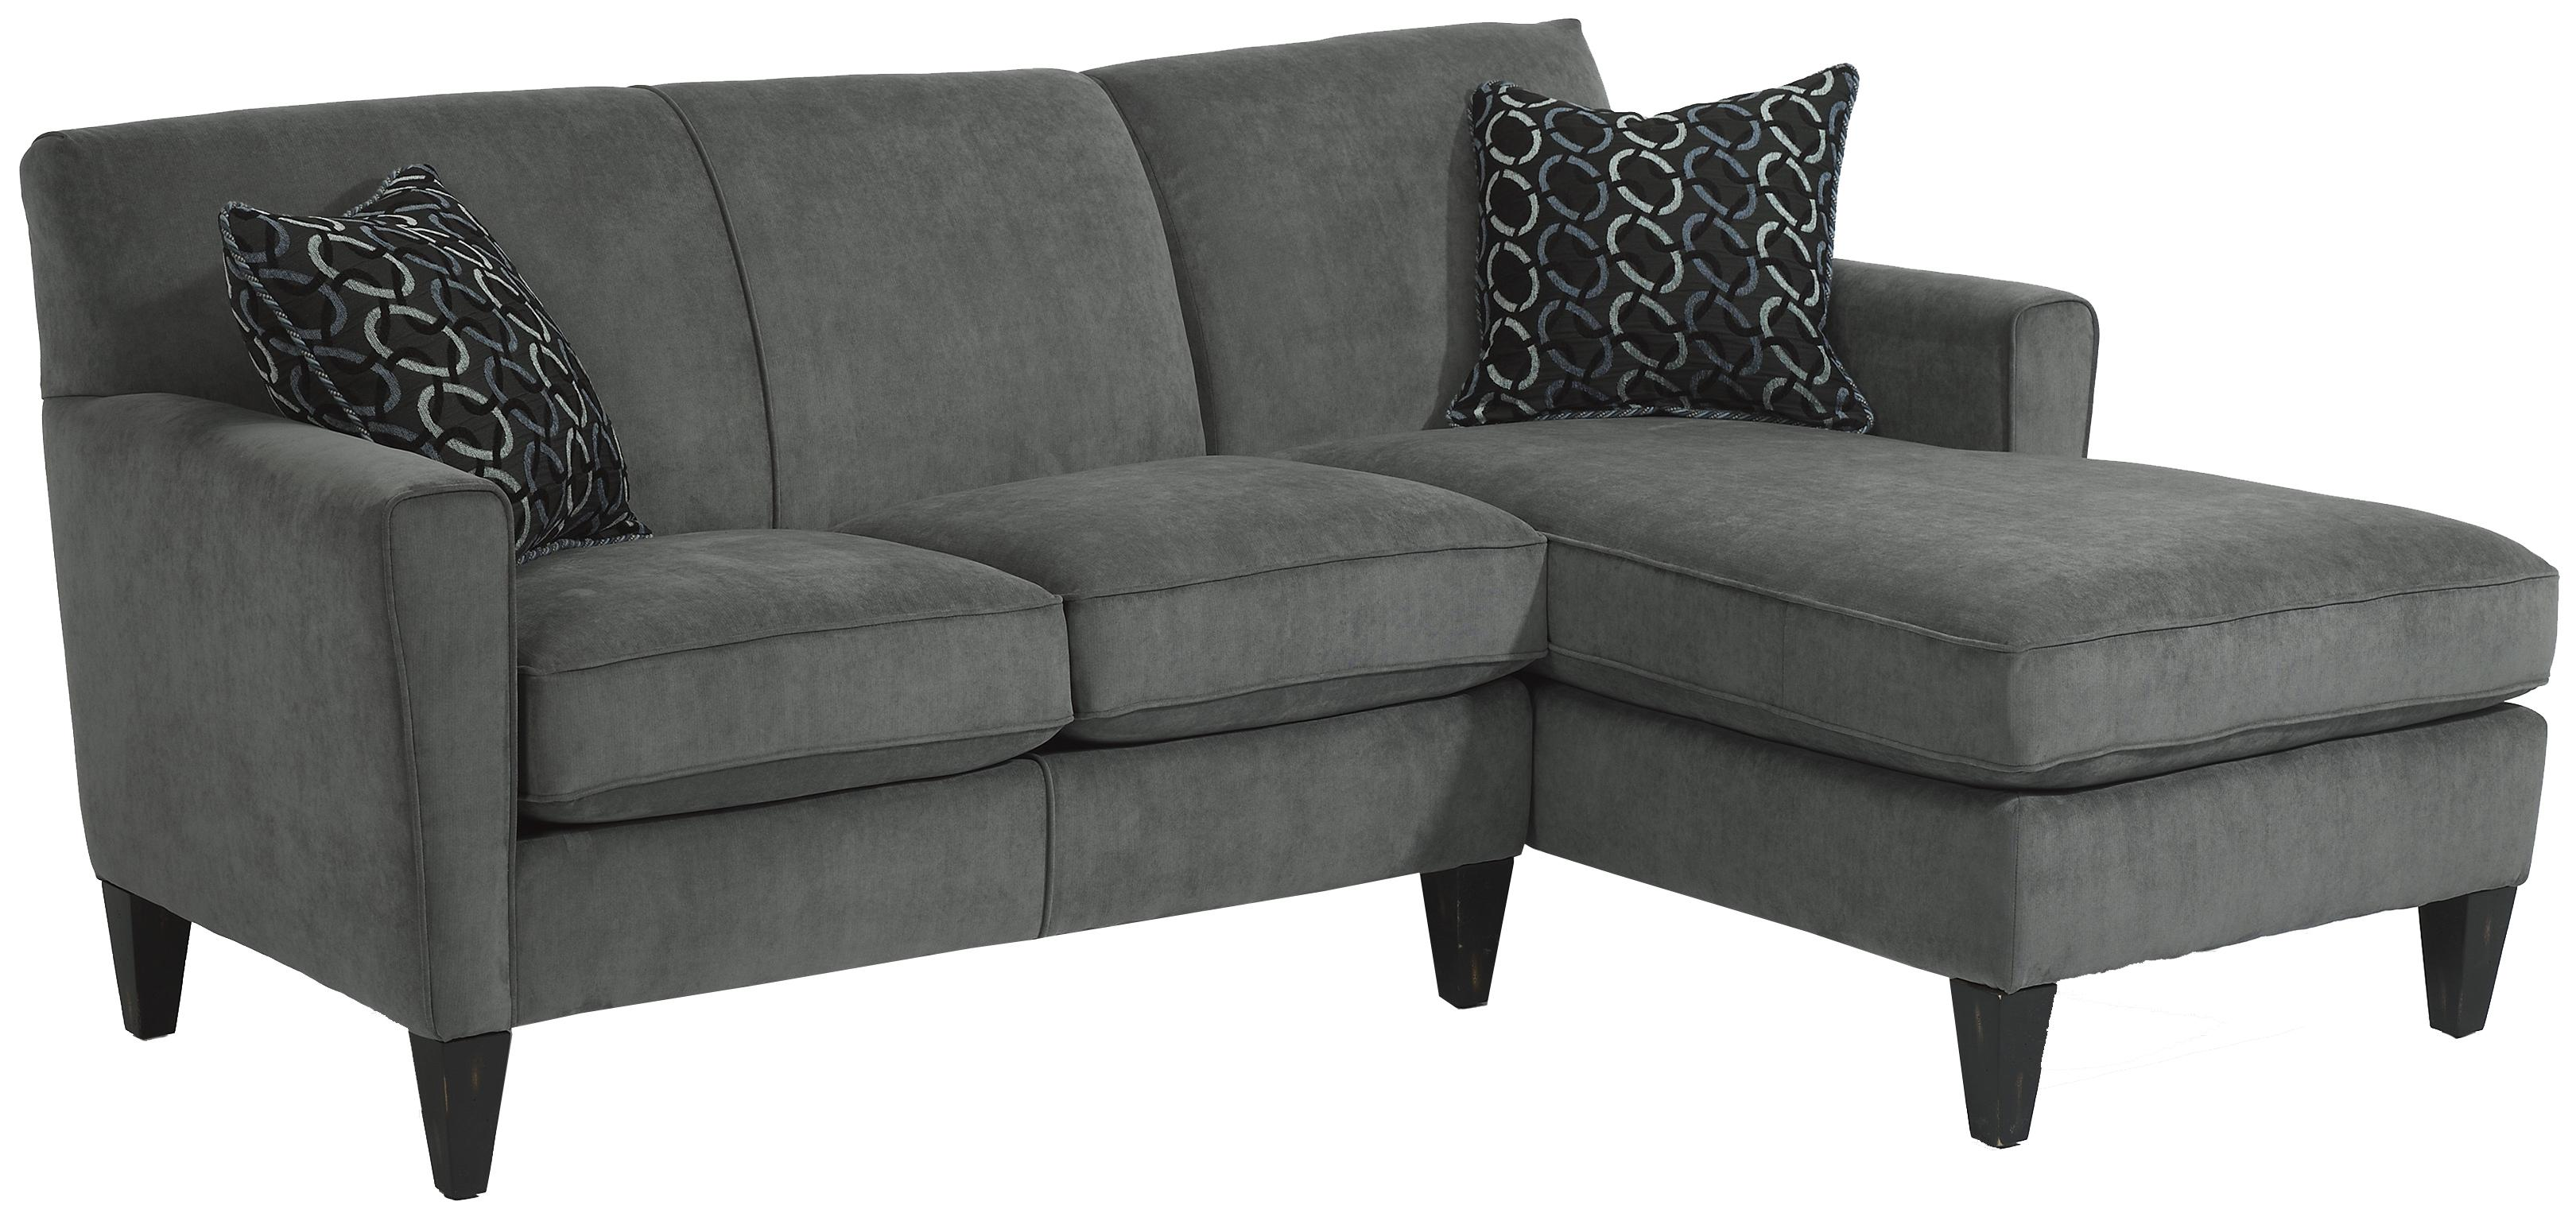 Flexsteel Digby Contemporary Sectional Sofa With Raf Chaise Ahfa Dealer Locator